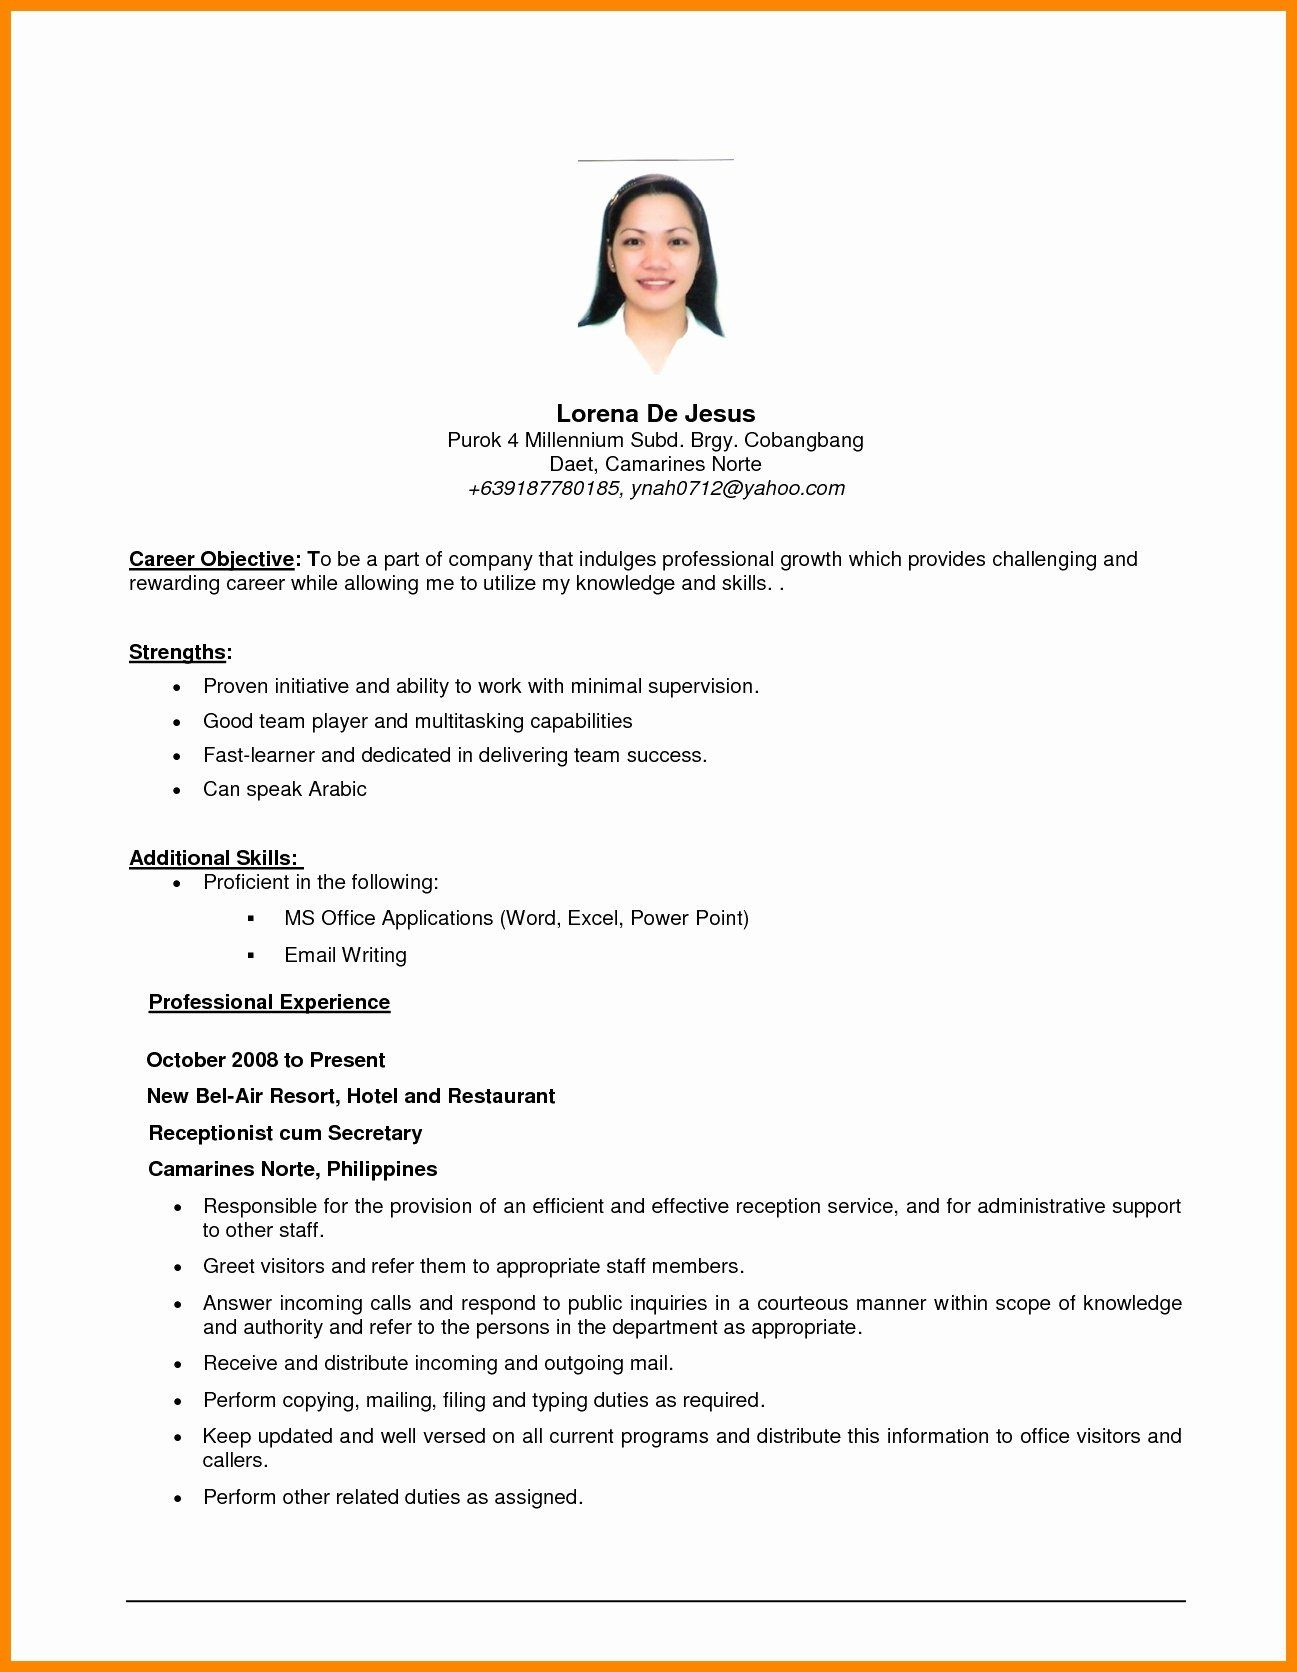 generic objective for resume inspirational general examples career objectives office work Resume Office Work Objective For Resume